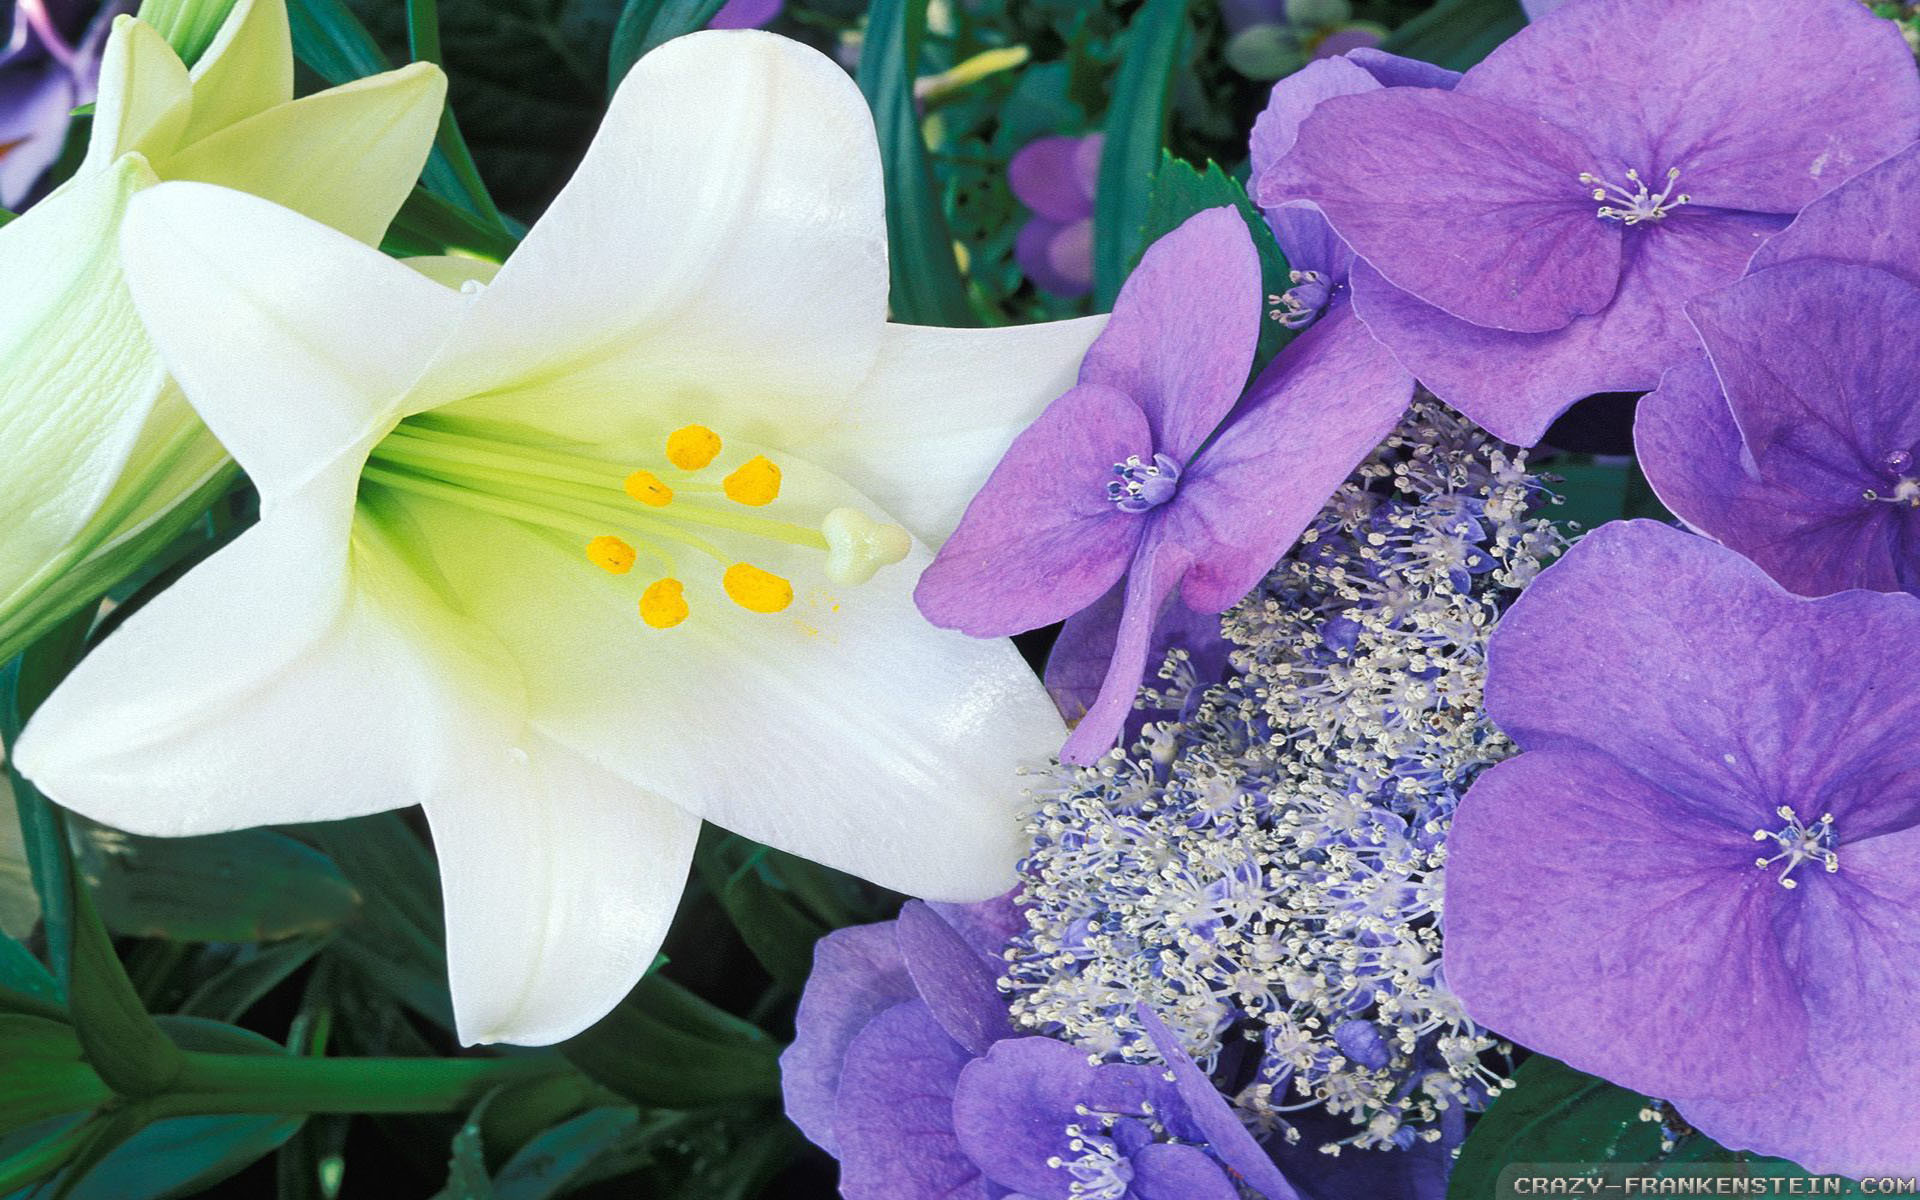 Wallpaper: Hydrangea and Easter lily. Resolution: 1024×768 | 1280×1024 |  1600×1200. Widescreen Res: 1440×900 | 1680×1050 | 1920×1200